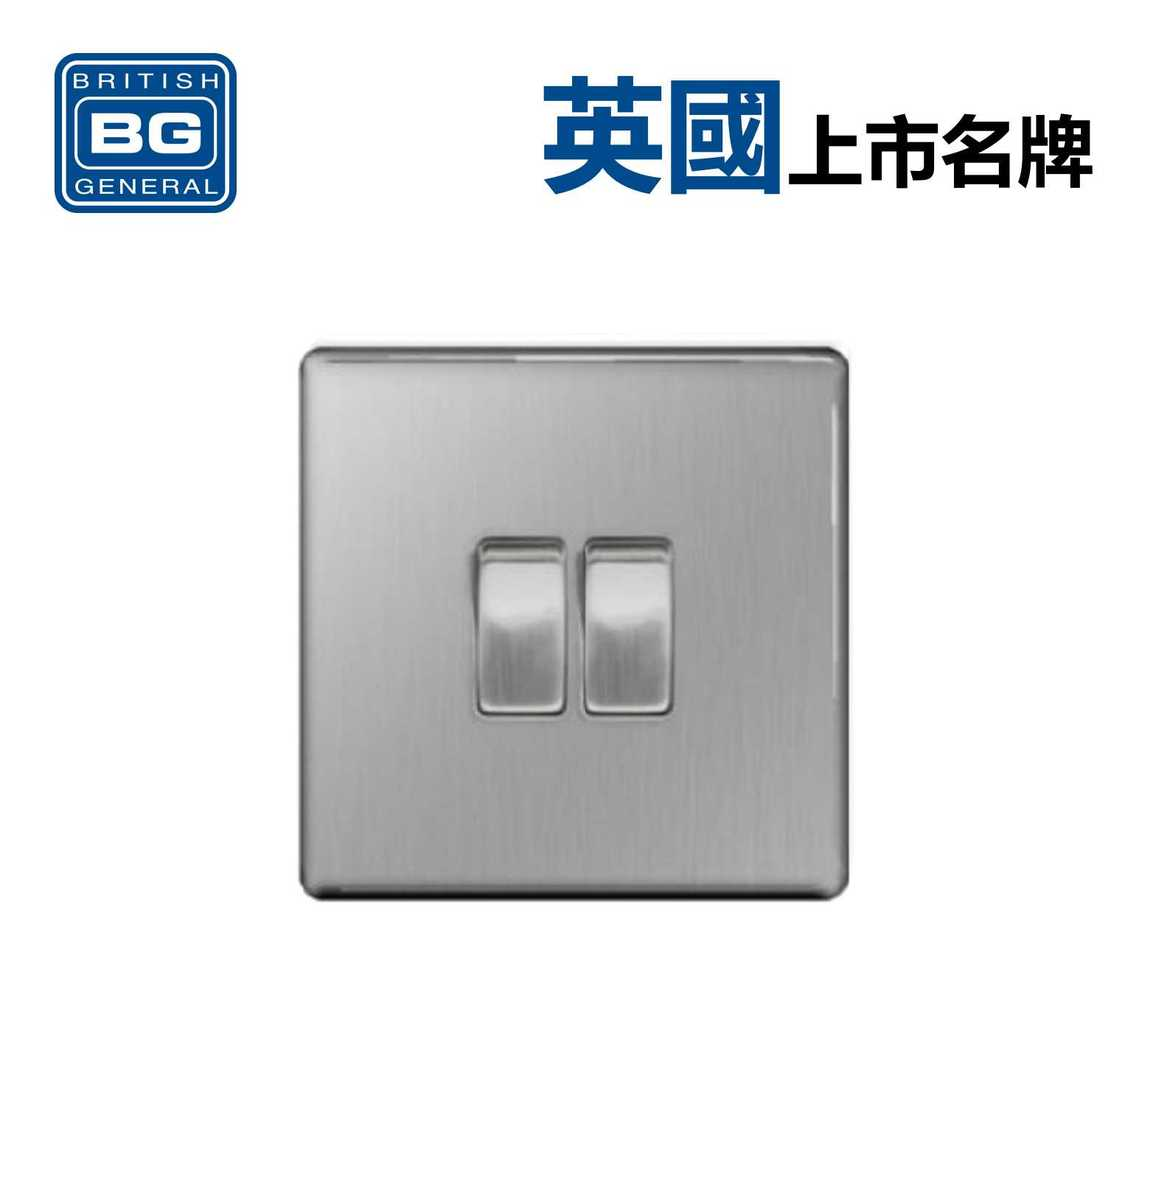 2-Gang 2-Way 10Amp Switches -Flatplate Brushed Steel (Model: FBS42)